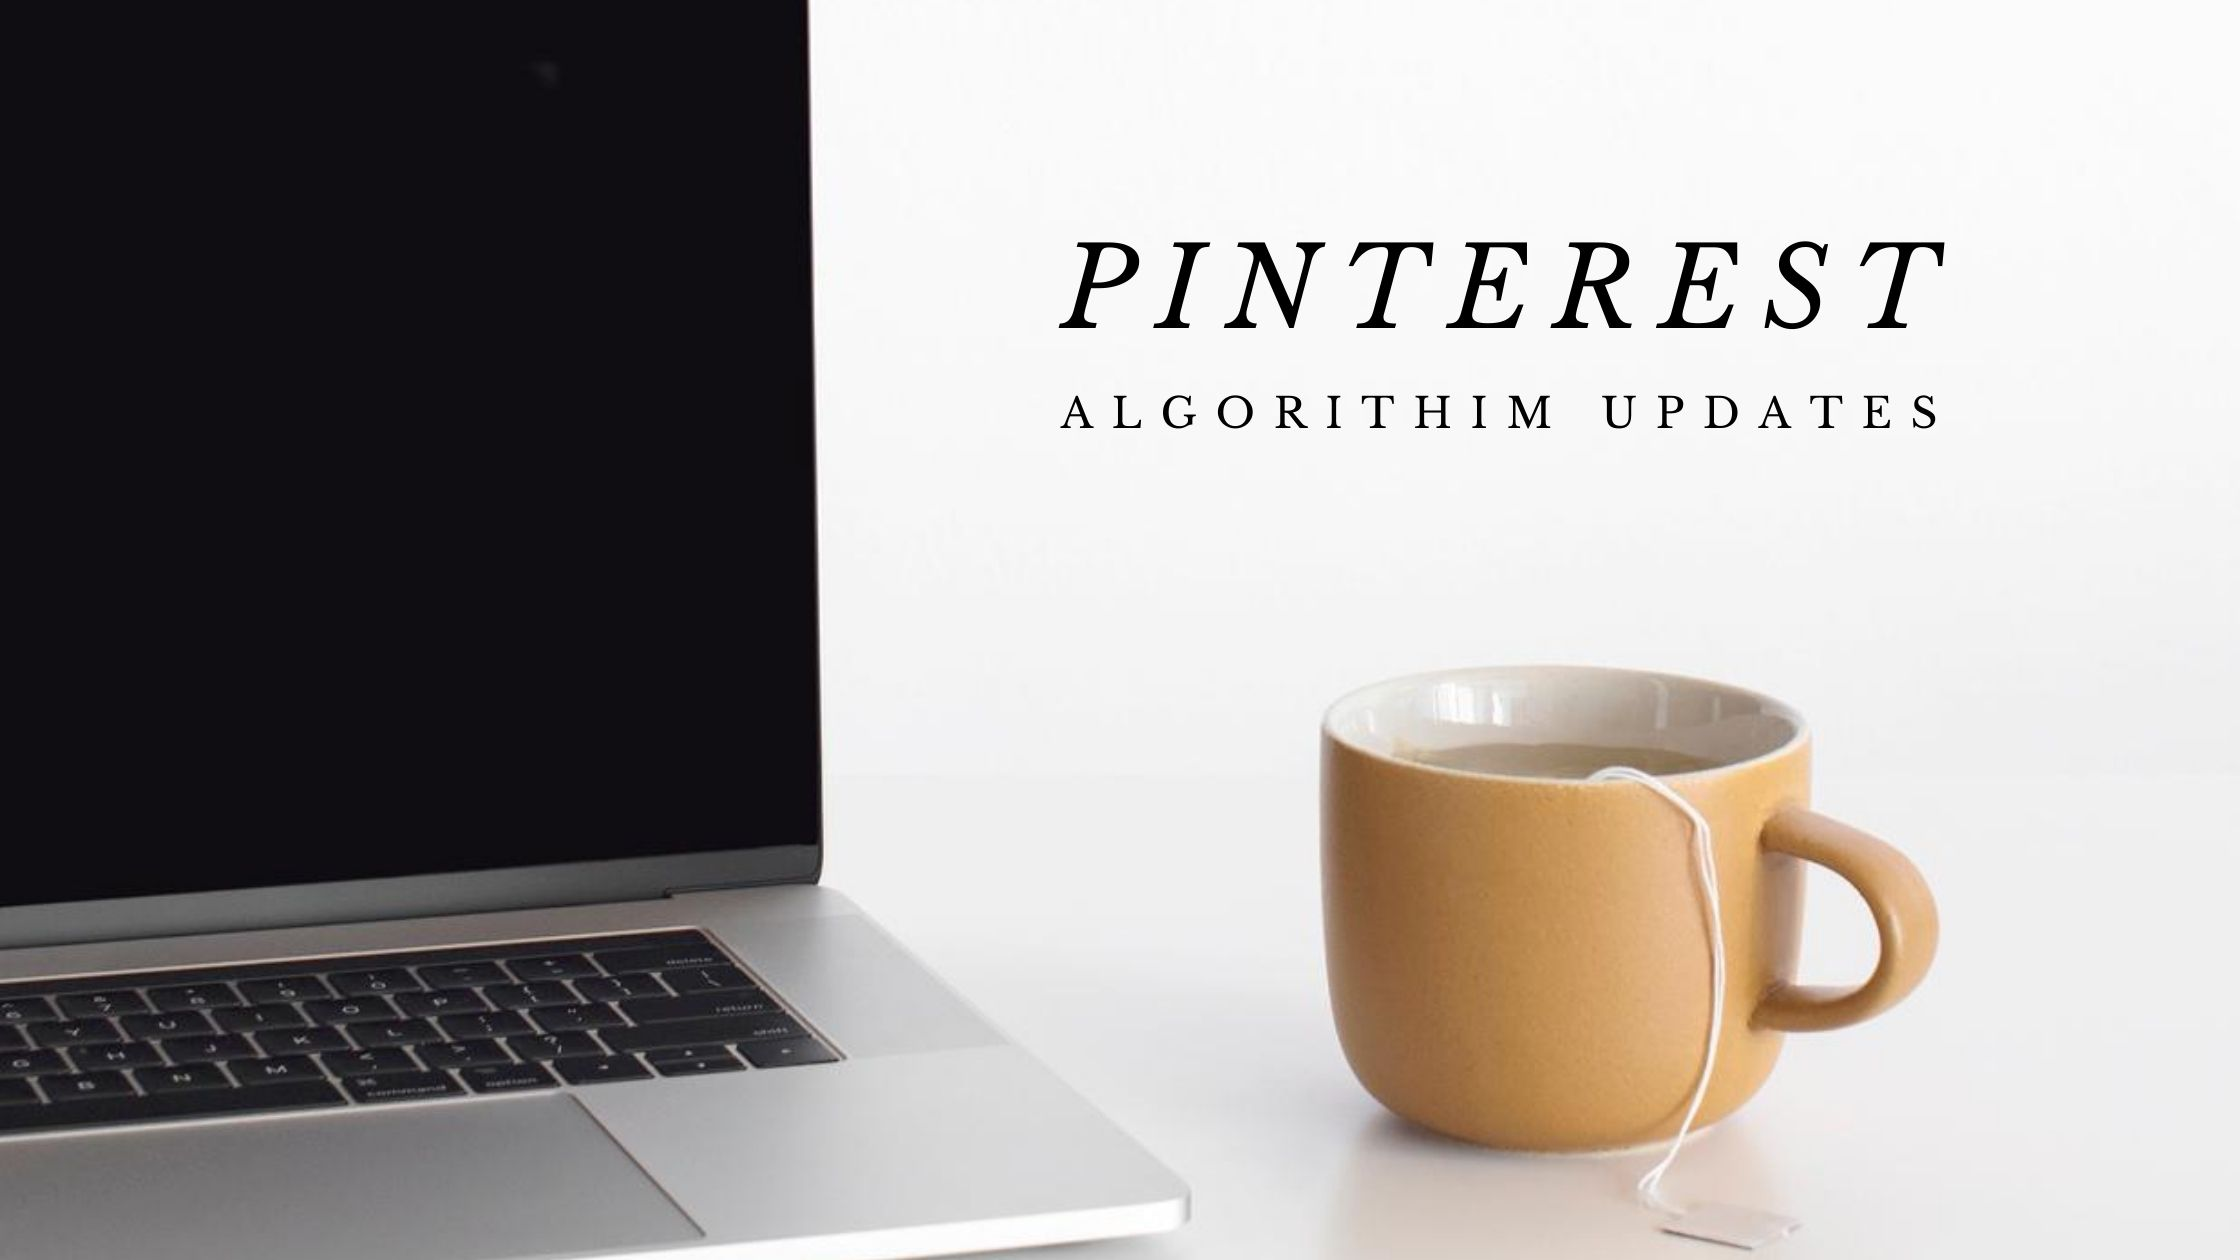 Coffee cup and laptop with pinterest algorithm updates